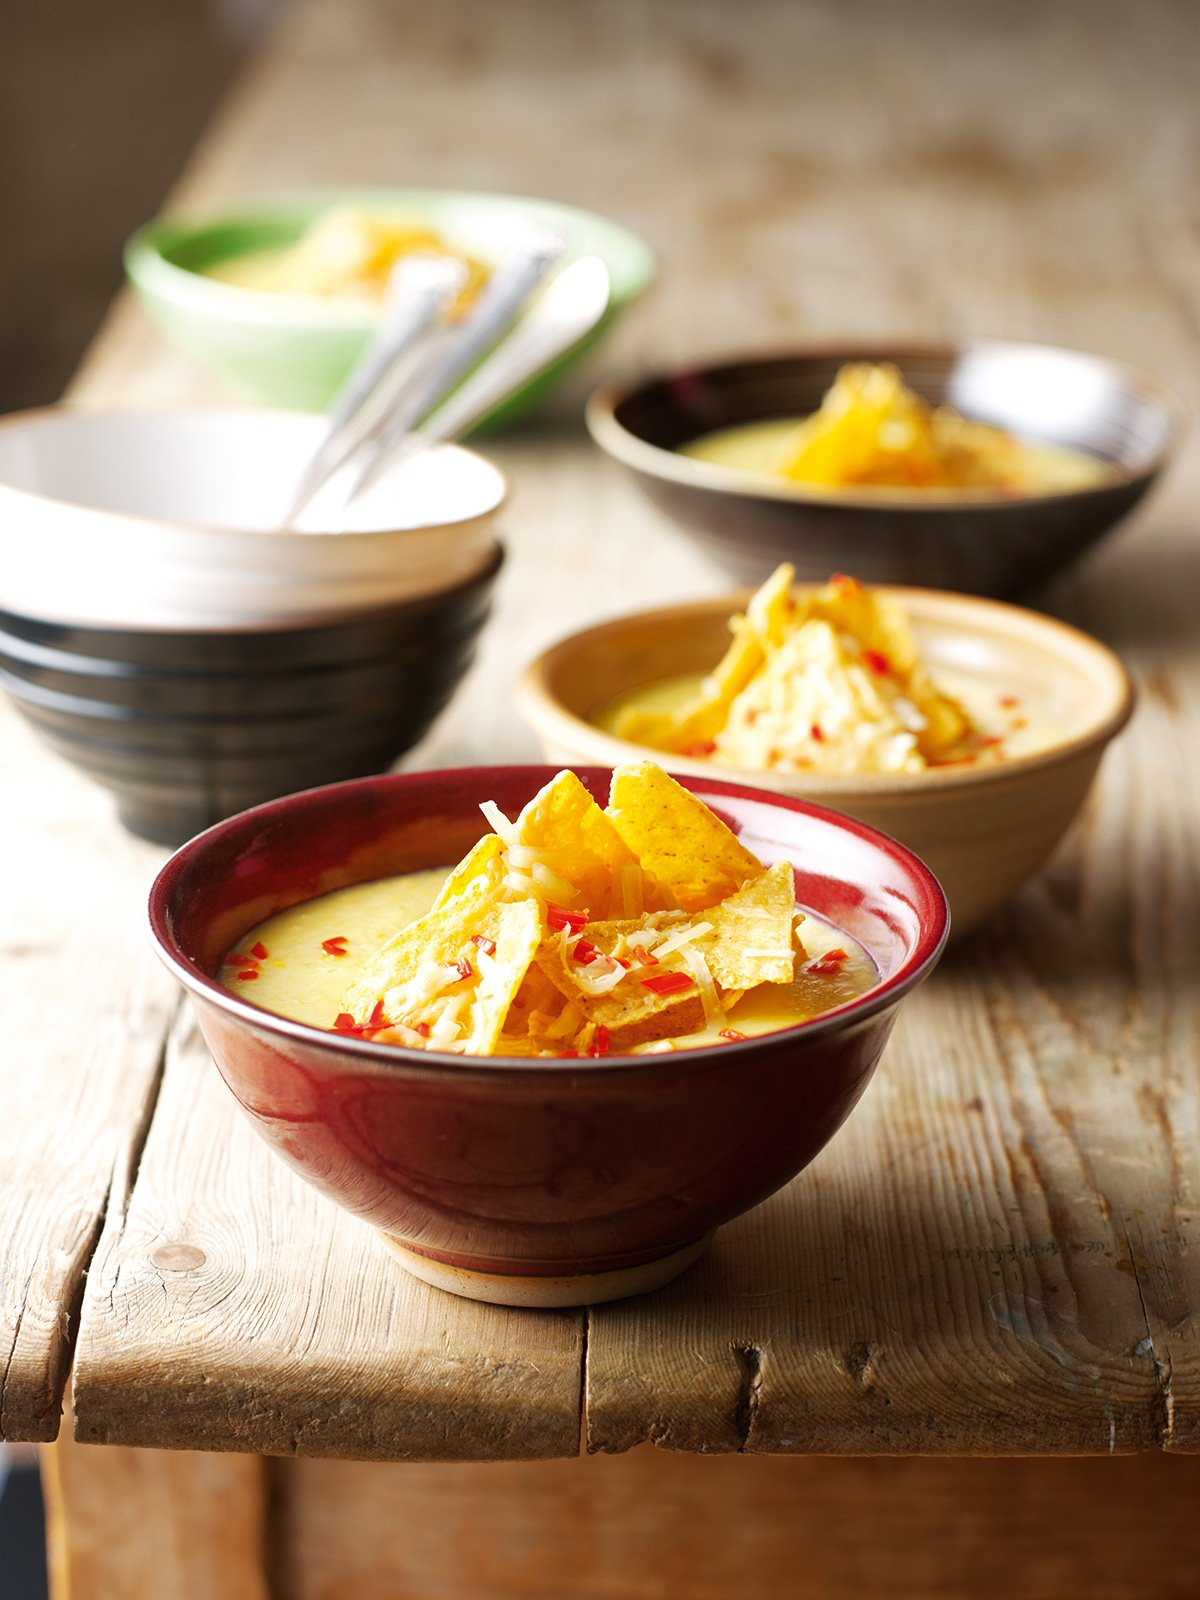 Sweetcorn Chowder With Toasted Tortillas | Nigella's ...